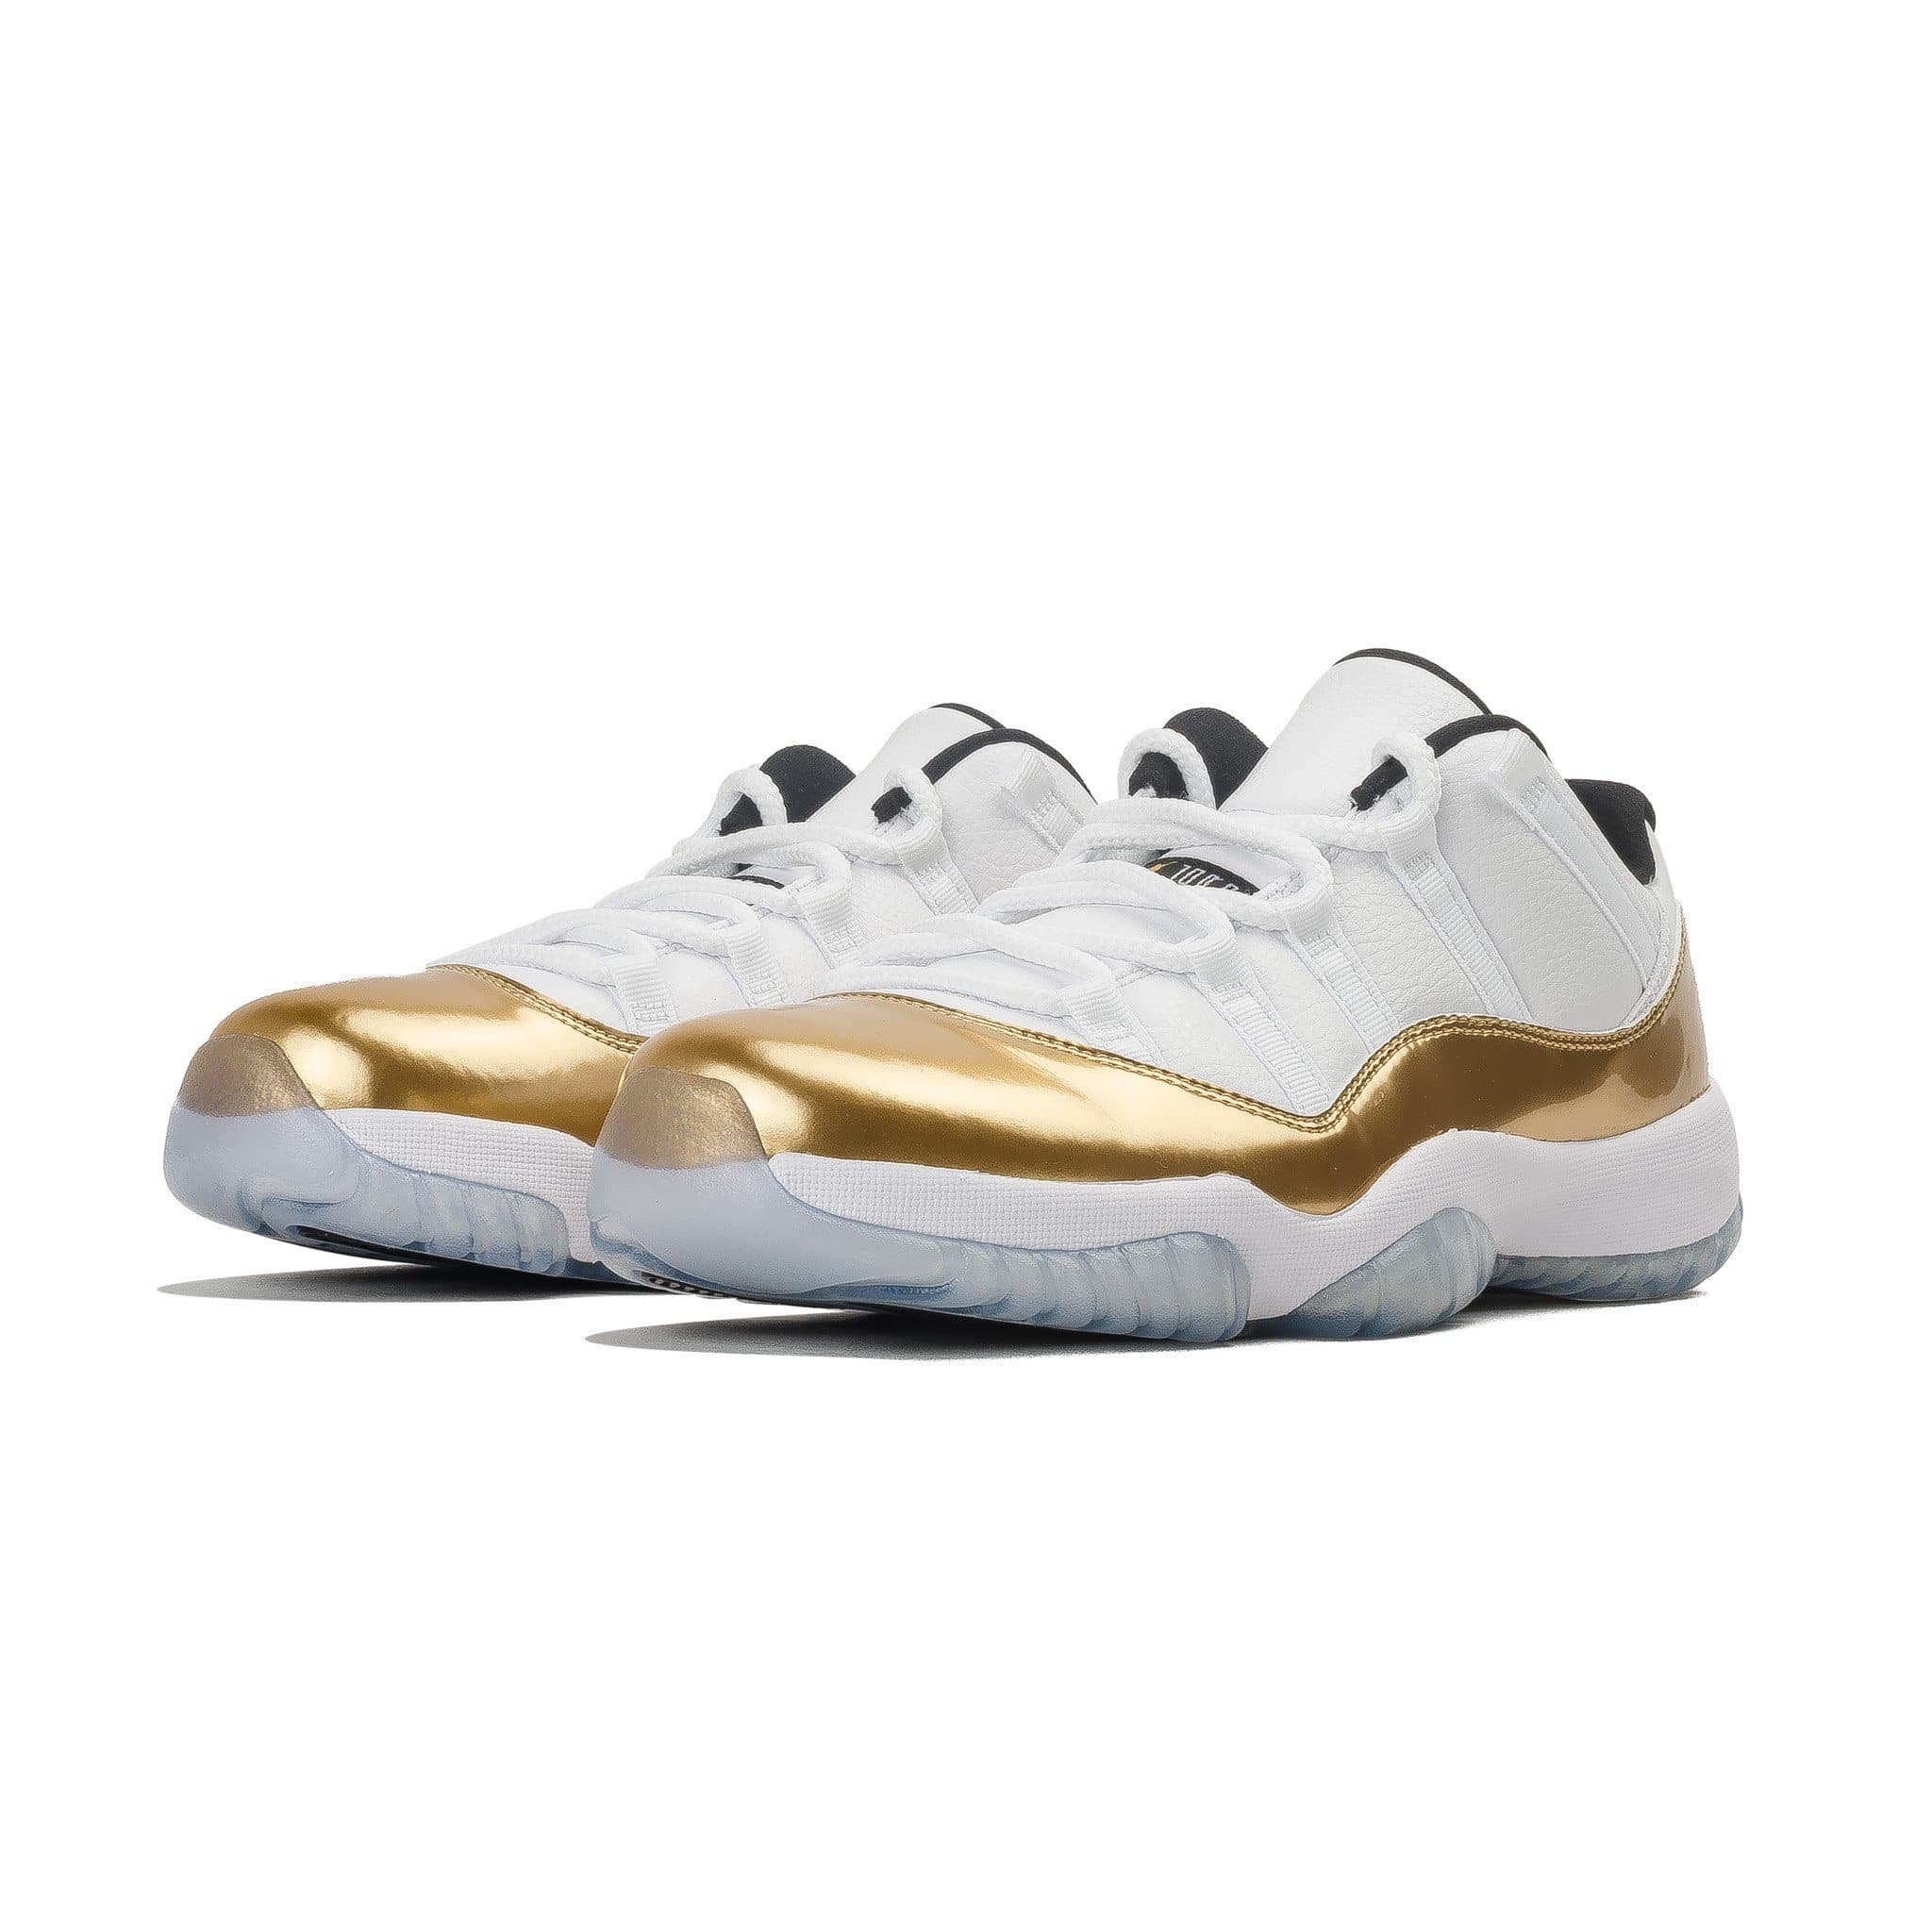 Air Jordan 11 Retro Low White- Metallic Gold - Kick Game